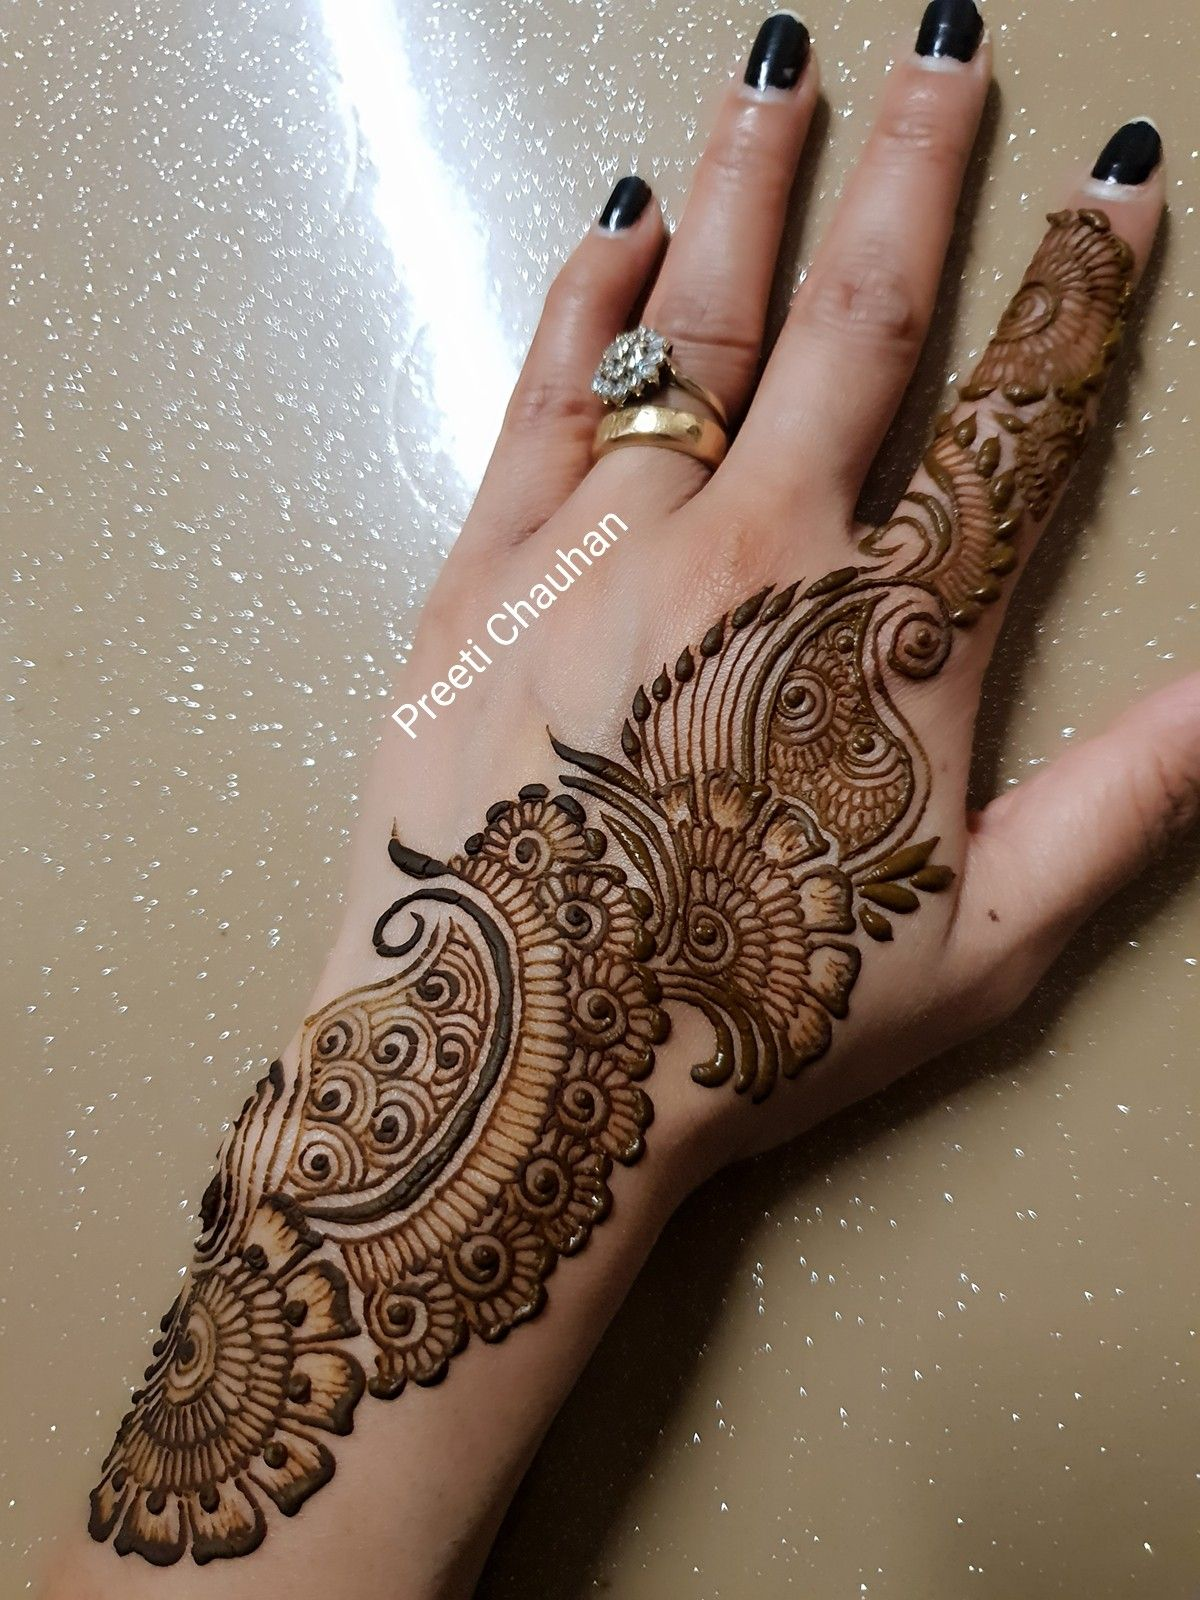 Mehndi desine latest rangoli simple henna hand images also pin by babu saini on jot pinterest designs and rh